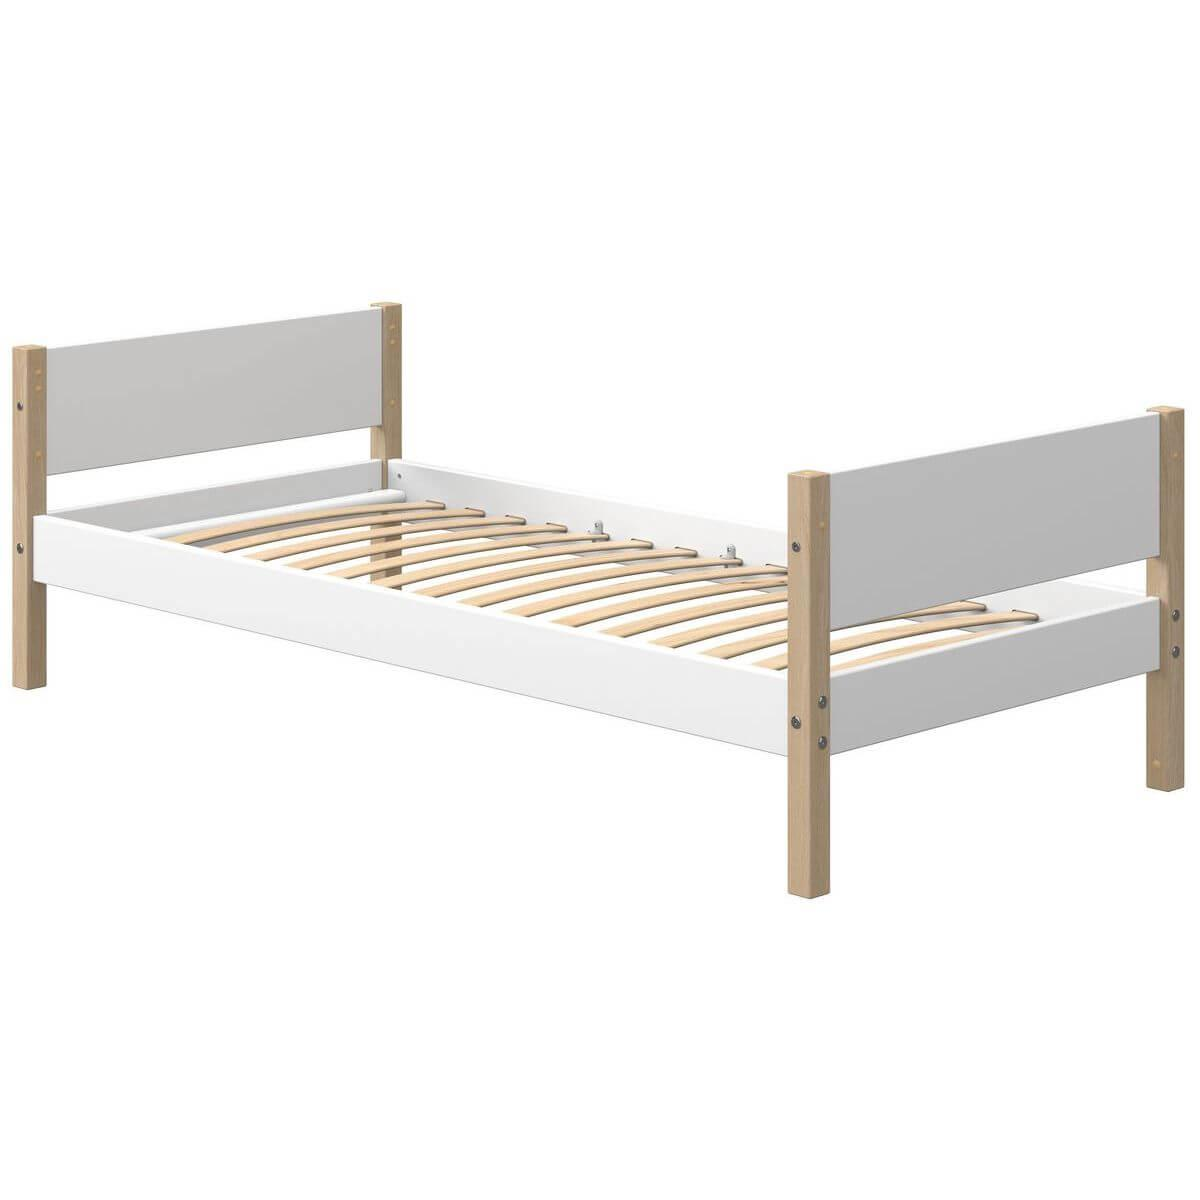 Cama individual 90x200cm NOR Flexa roble-blanco